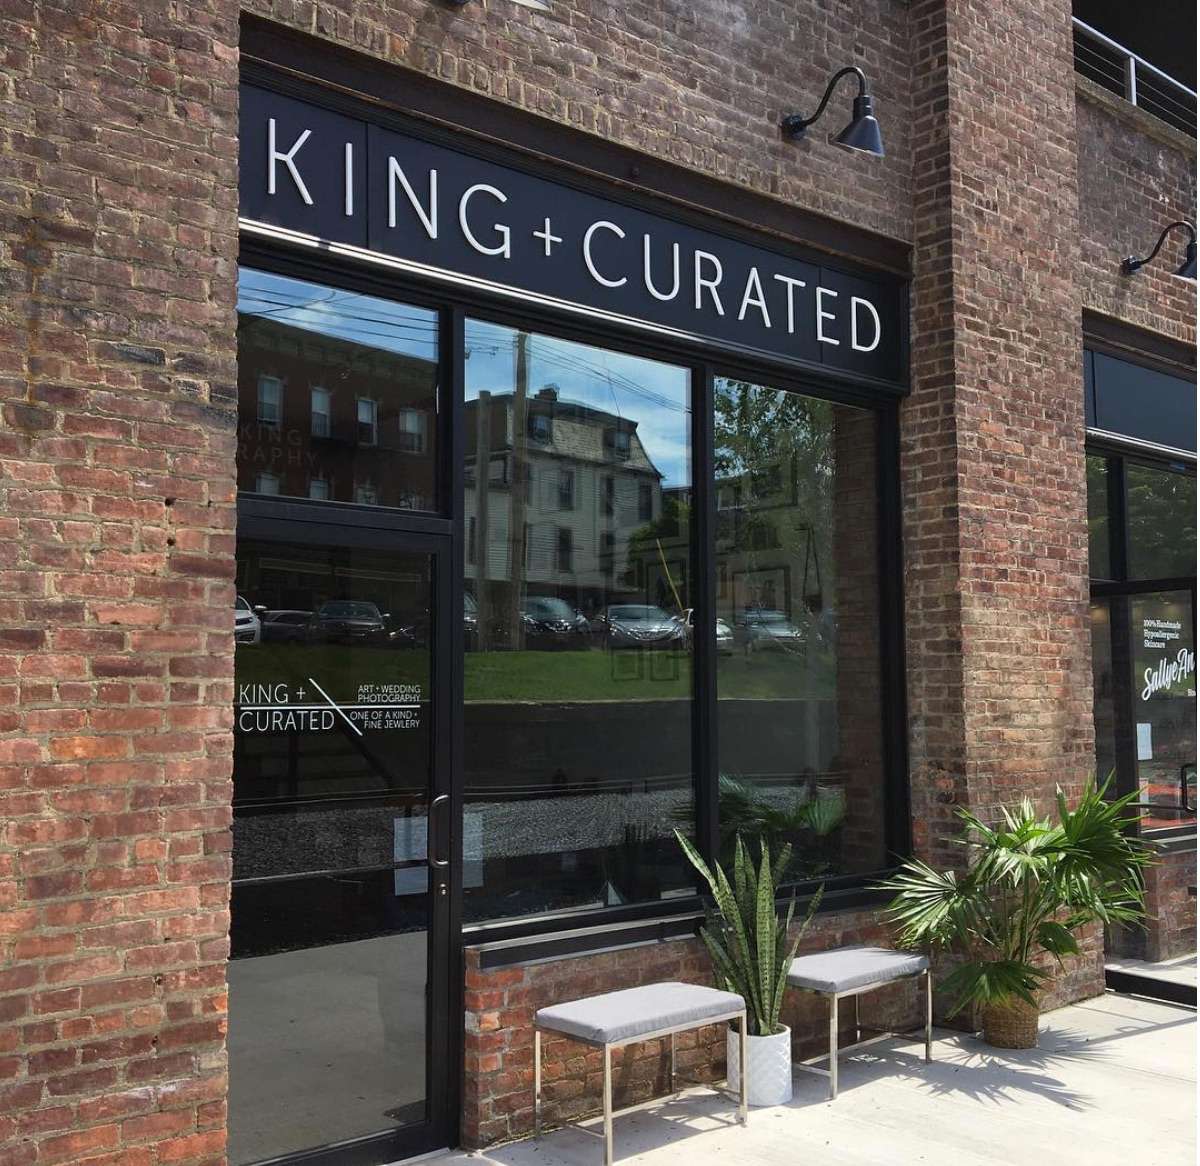 King and Curated, the combo wedding photography store and handcrafted jewelry store.